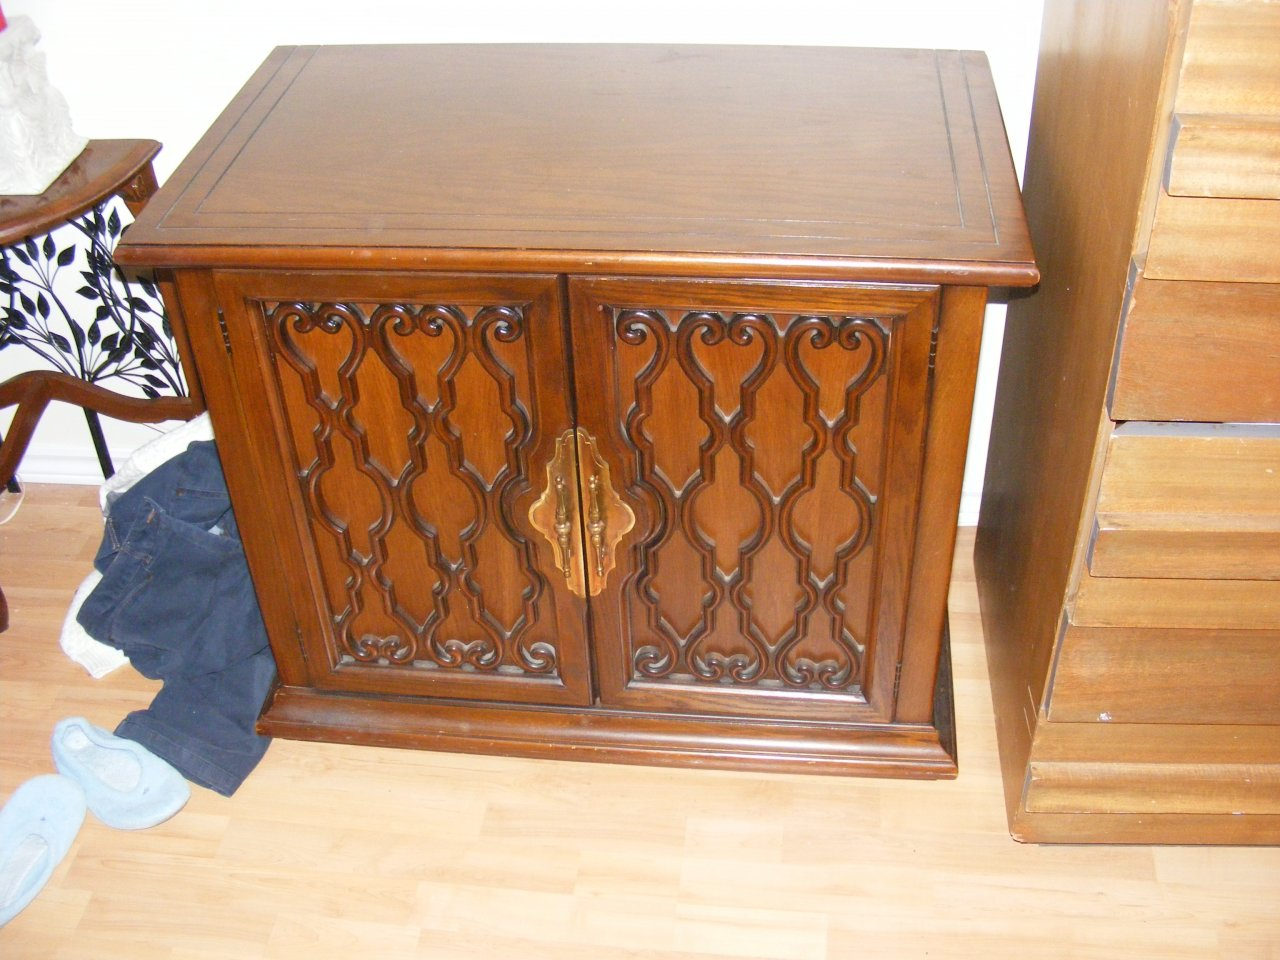 Malcolm Better Built Furniture Our Mom Passed Away